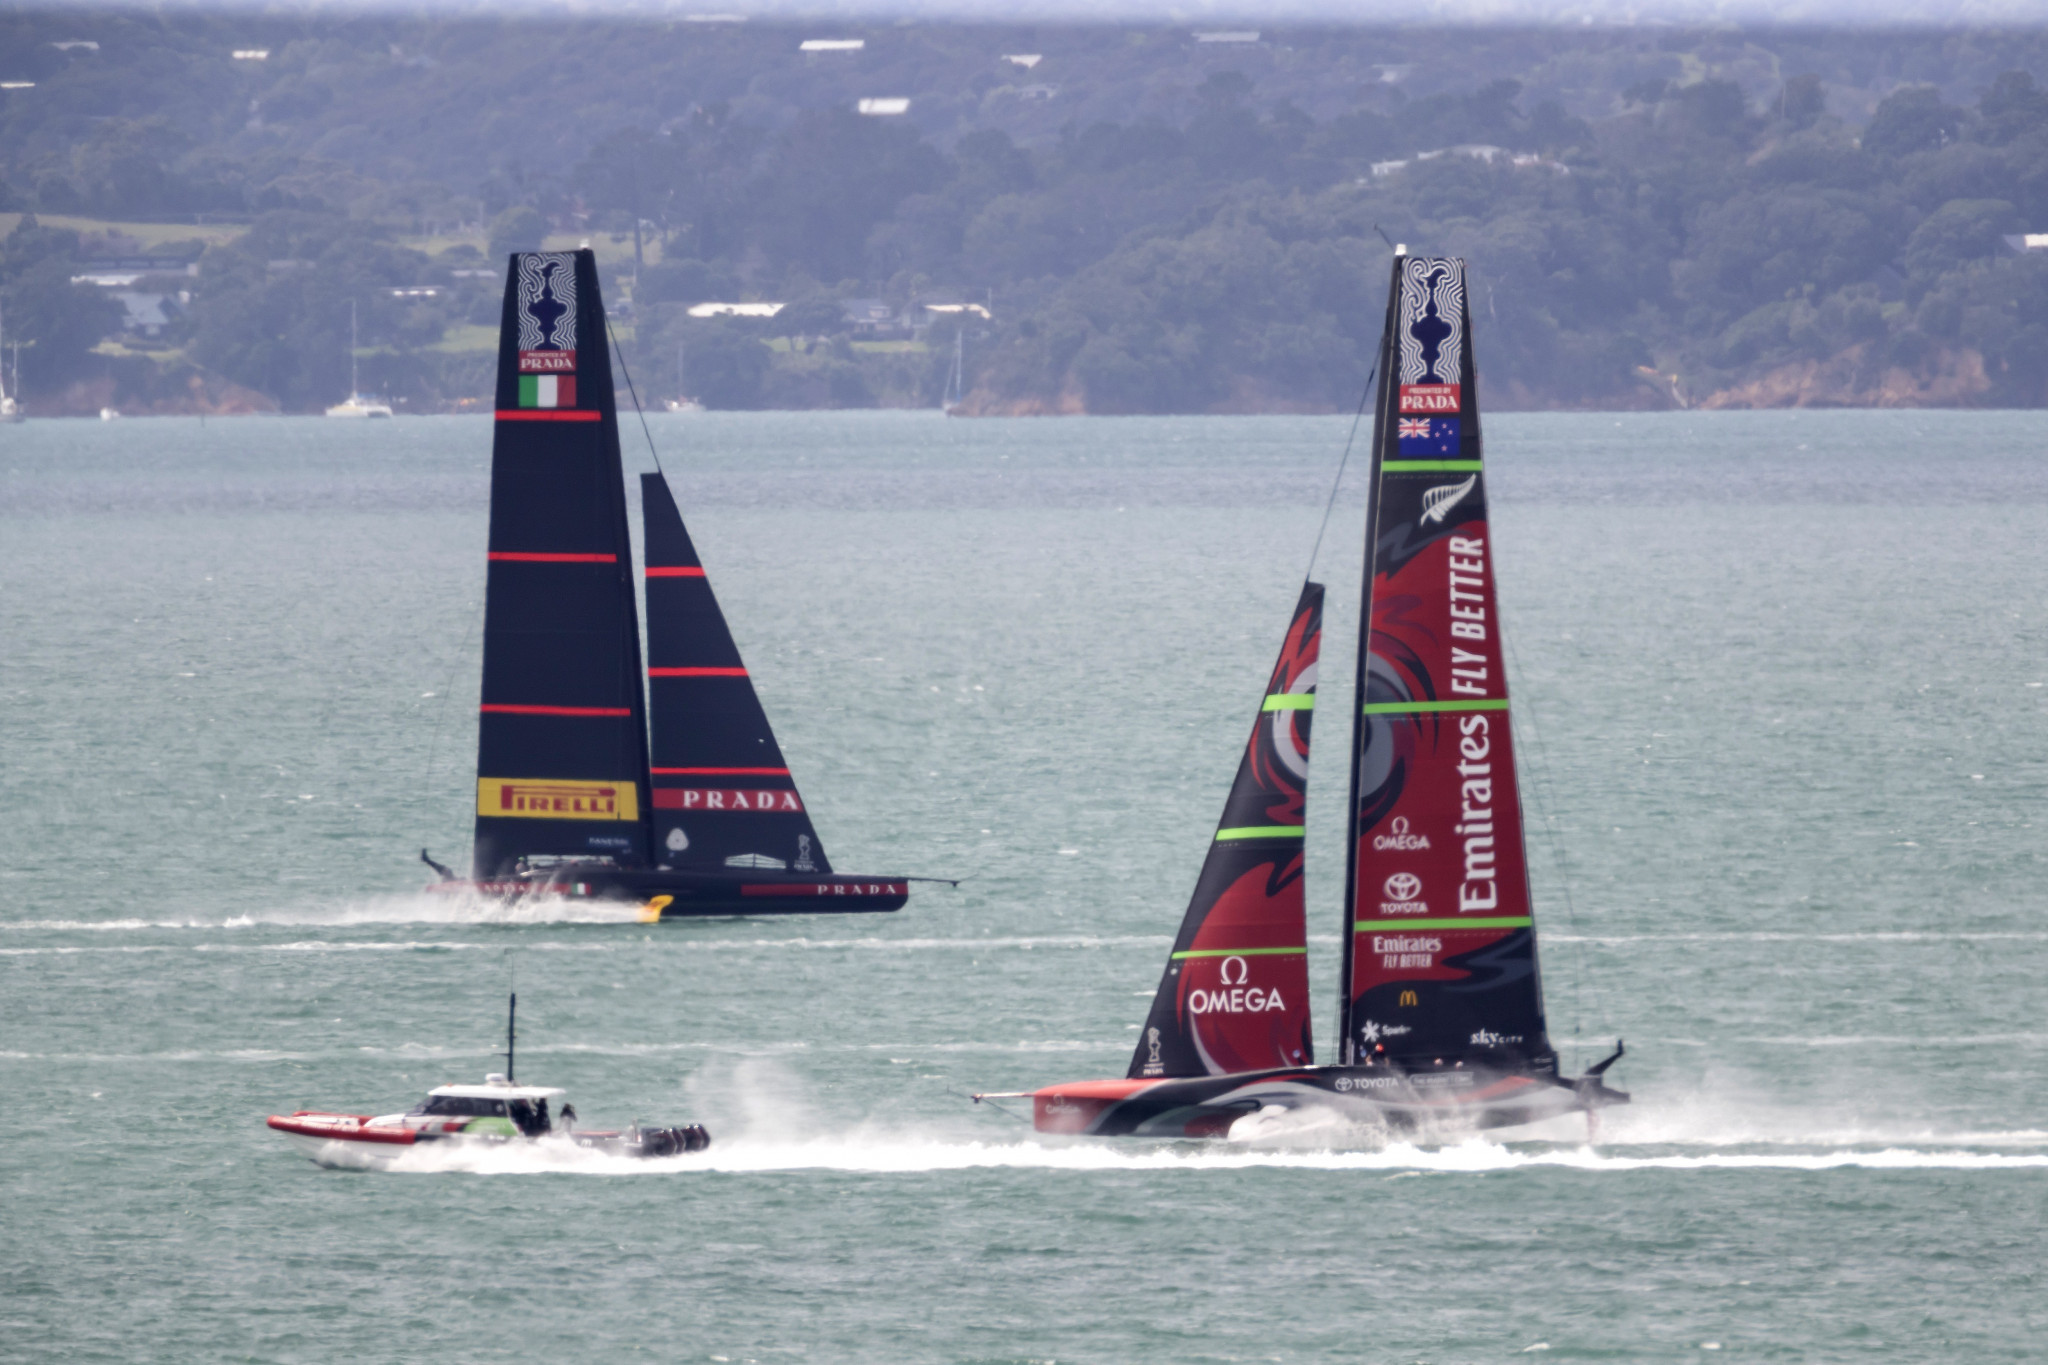 Team New Zealand to go up against Luna Rossa in America's Cup